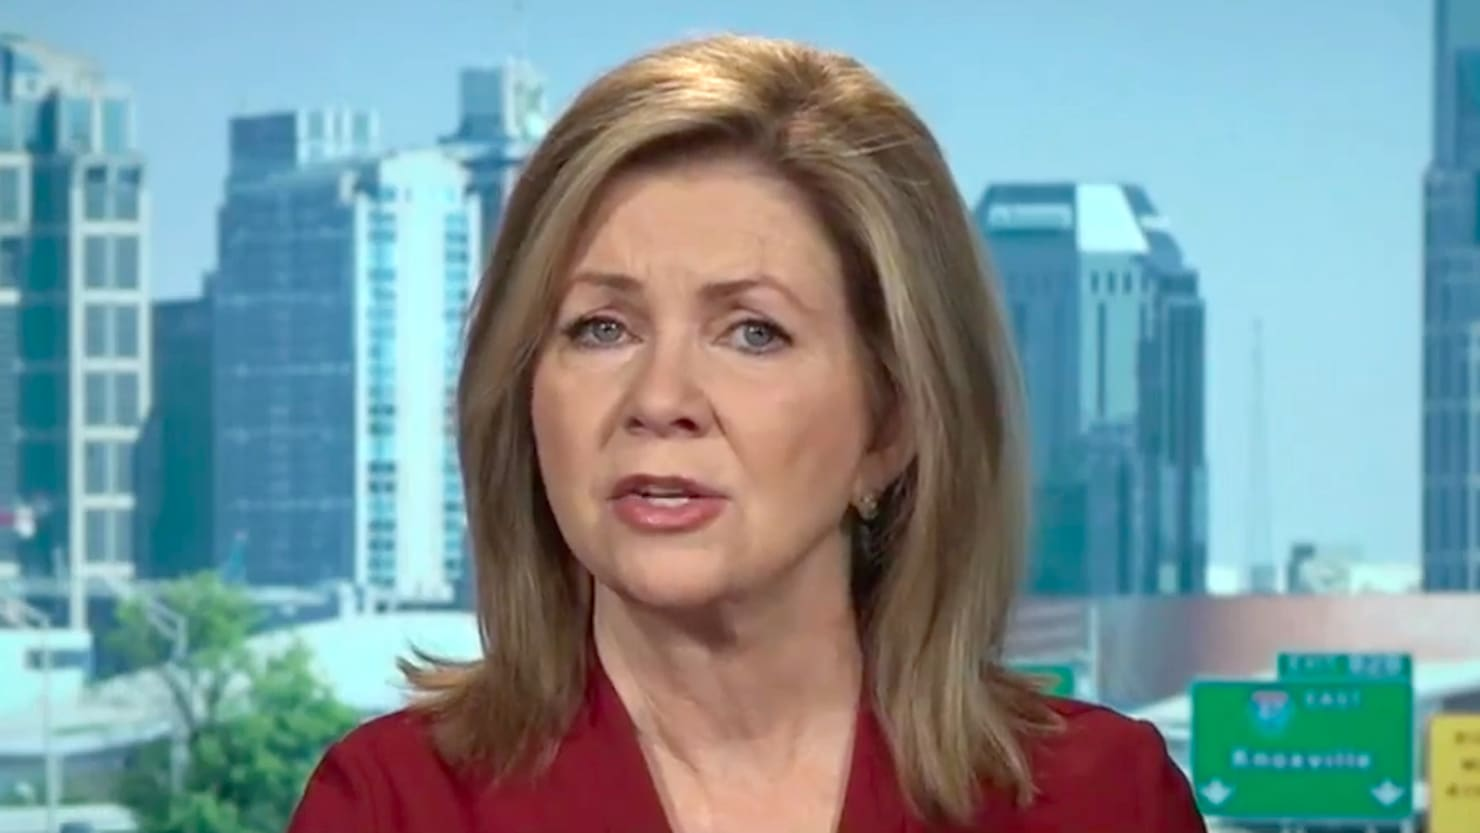 Marsha Blackburn's Gut Reaction to Thousand Oaks Shooting: 'Protect the 2nd Amendment'